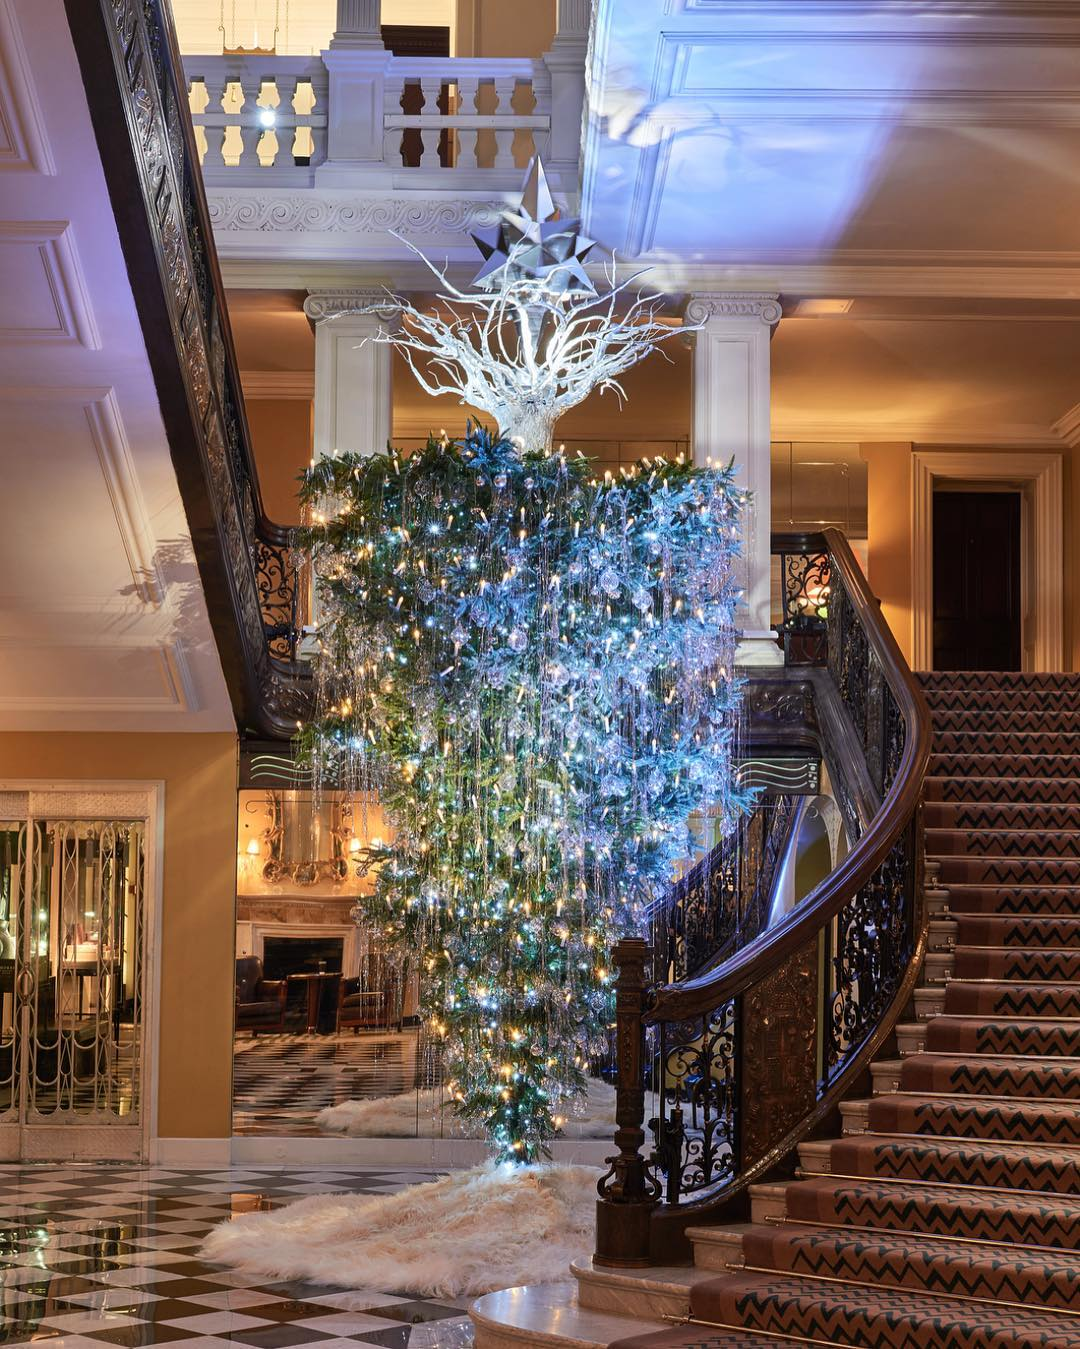 Upside down Christmas tree Claridges London